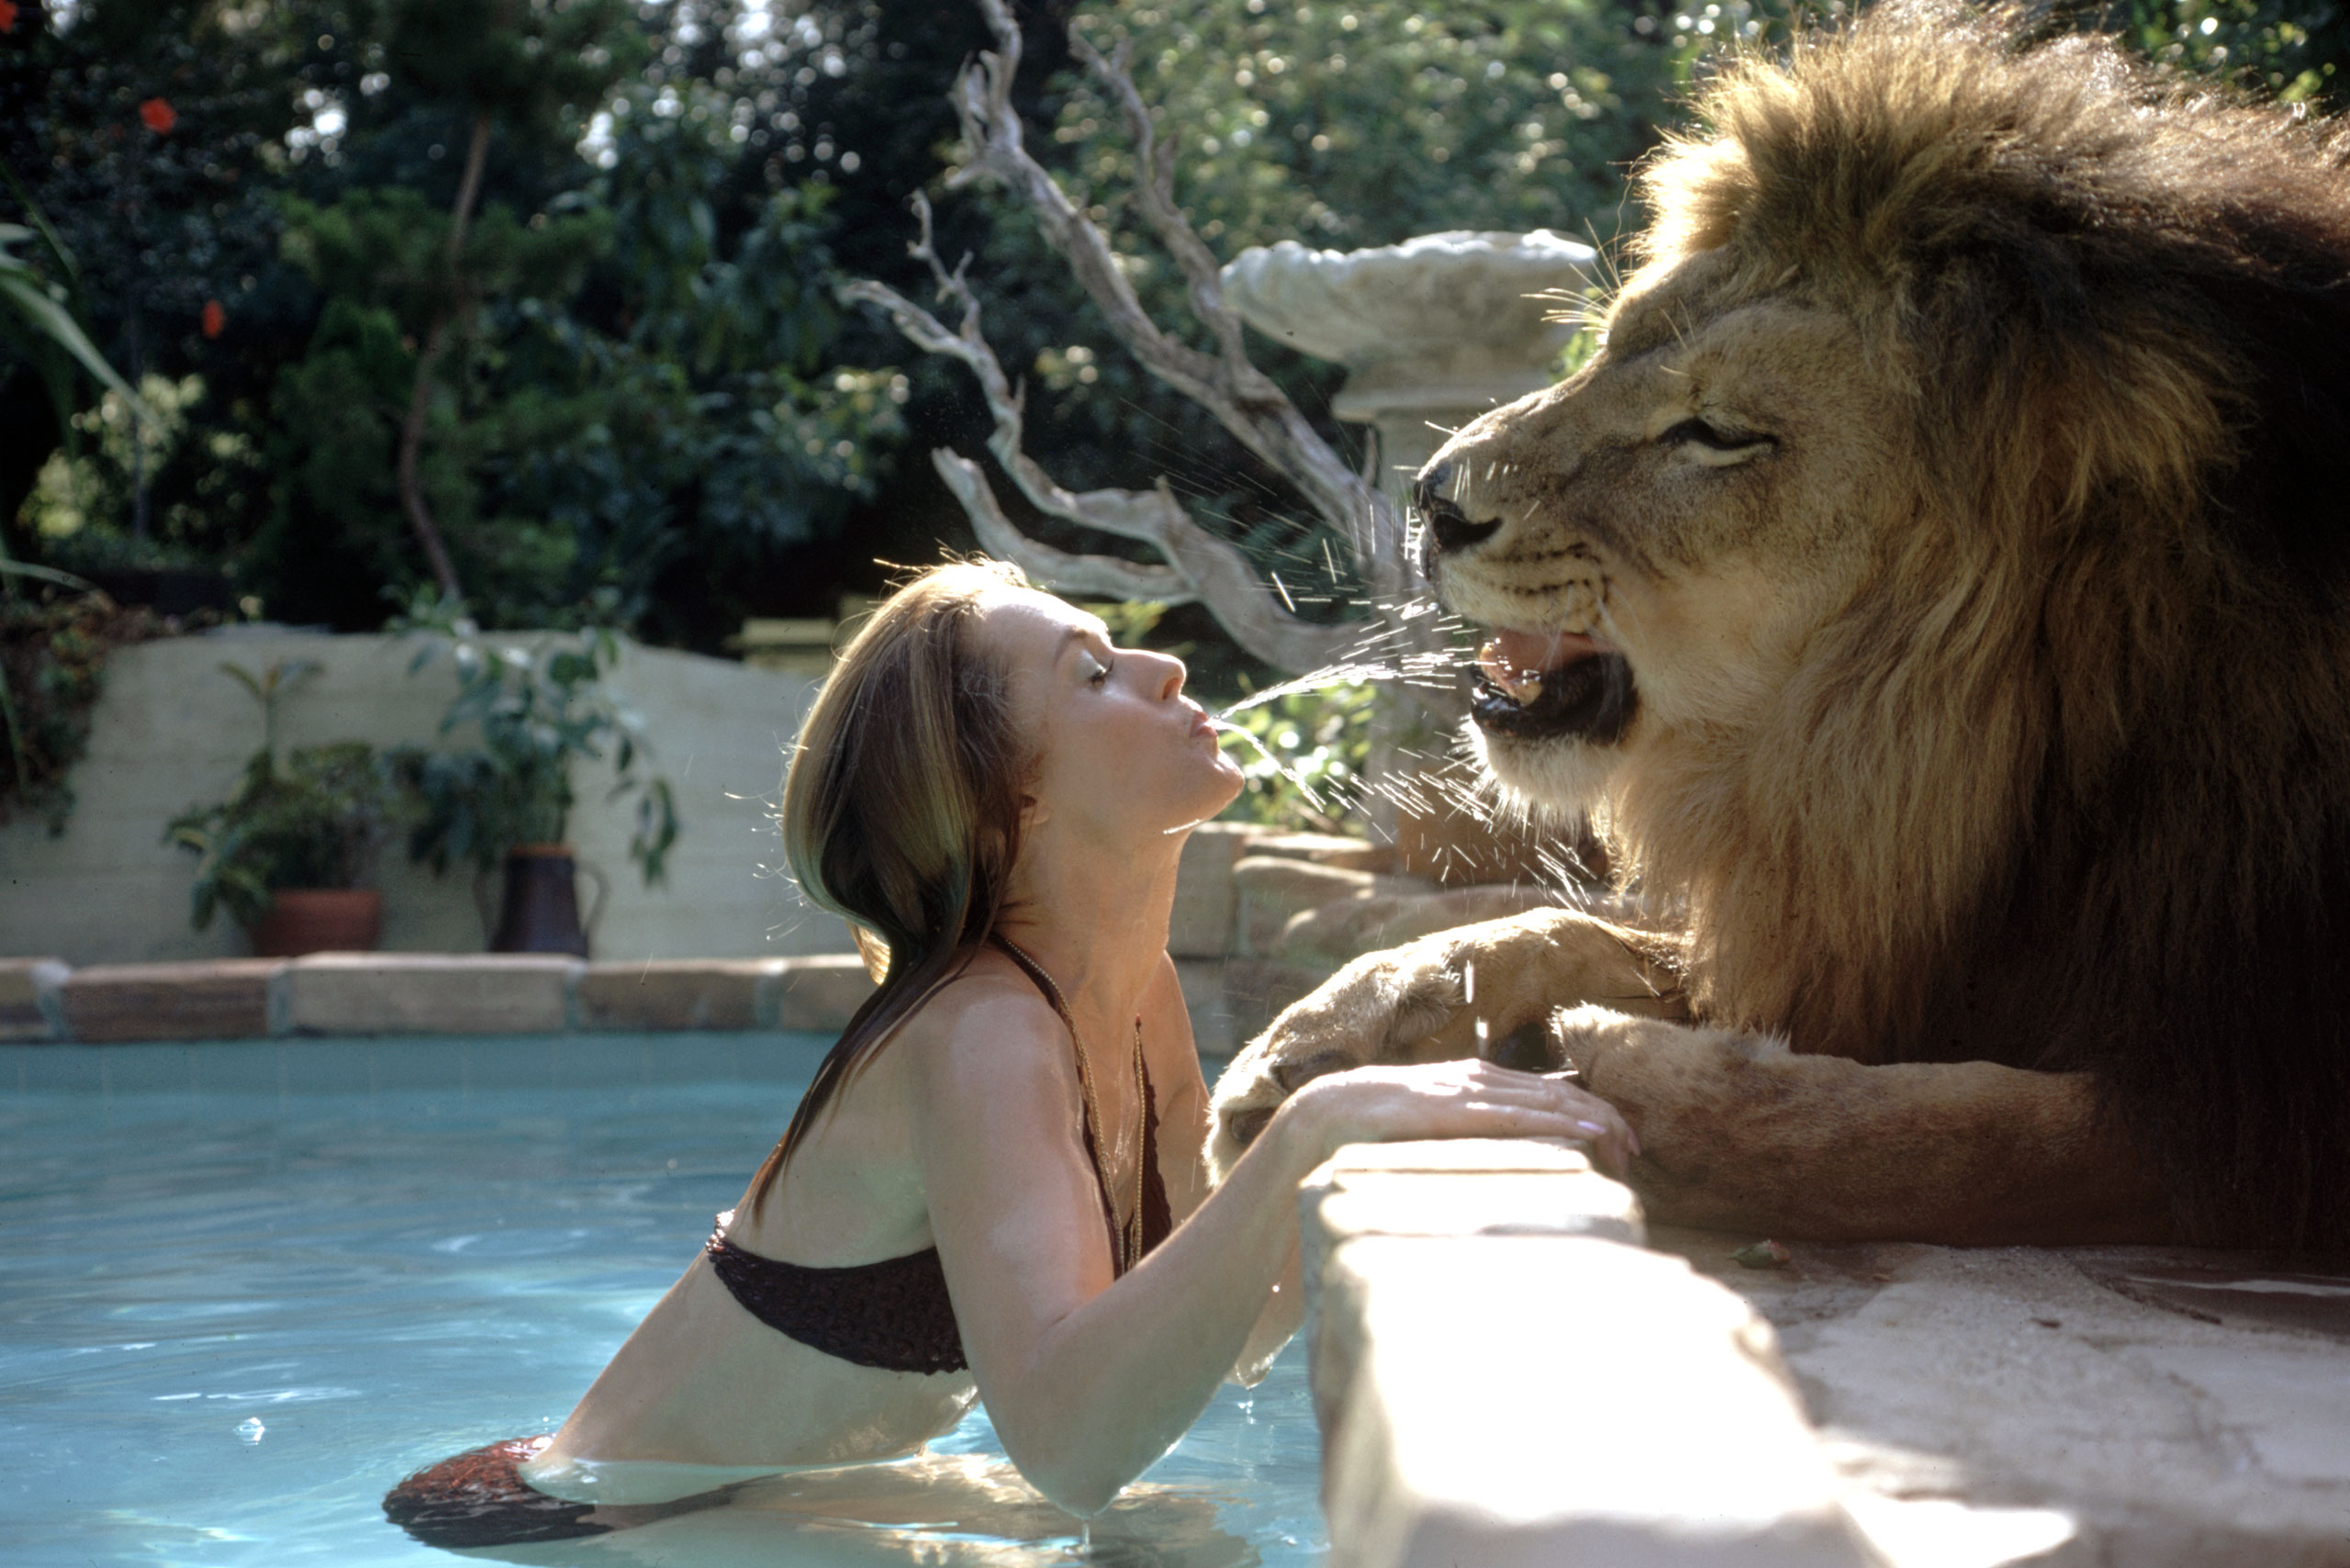 Tippi Hedren in her swimming pool, spouting water at Neil the lion, Calif., 1971.